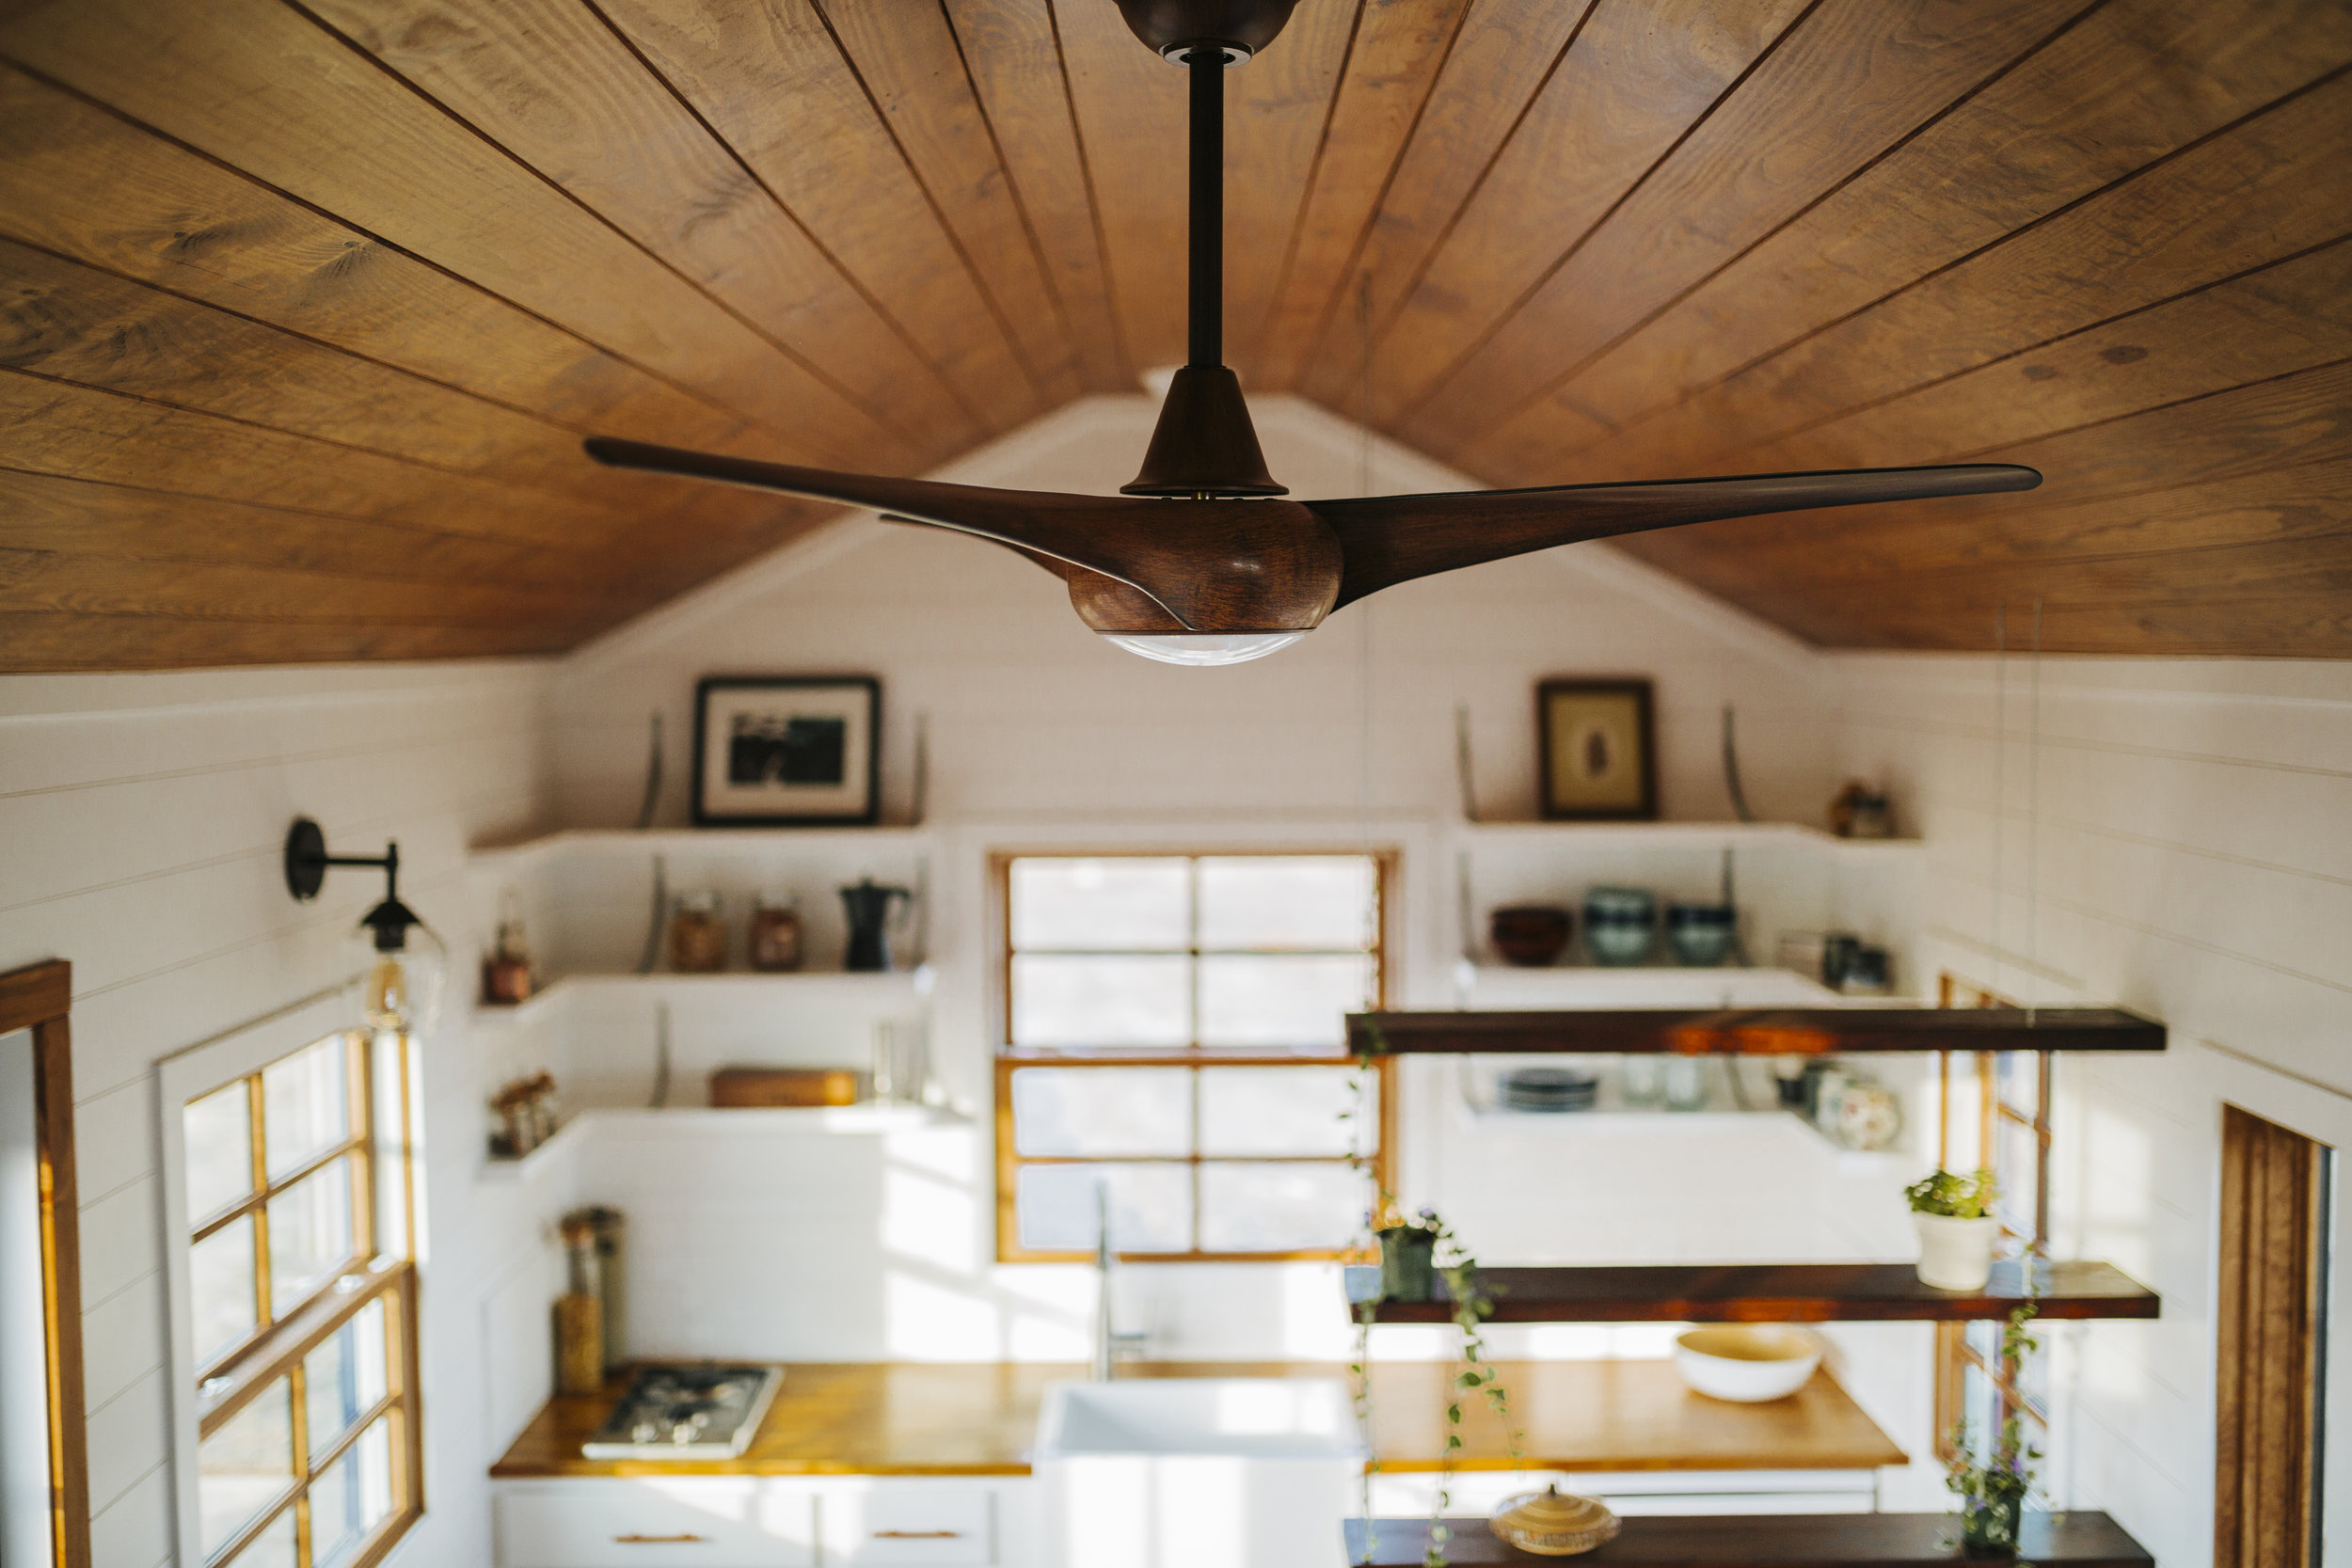 The Monocle by Wind River Tiny Homes - modern ceiling fan, suspended cable shelving